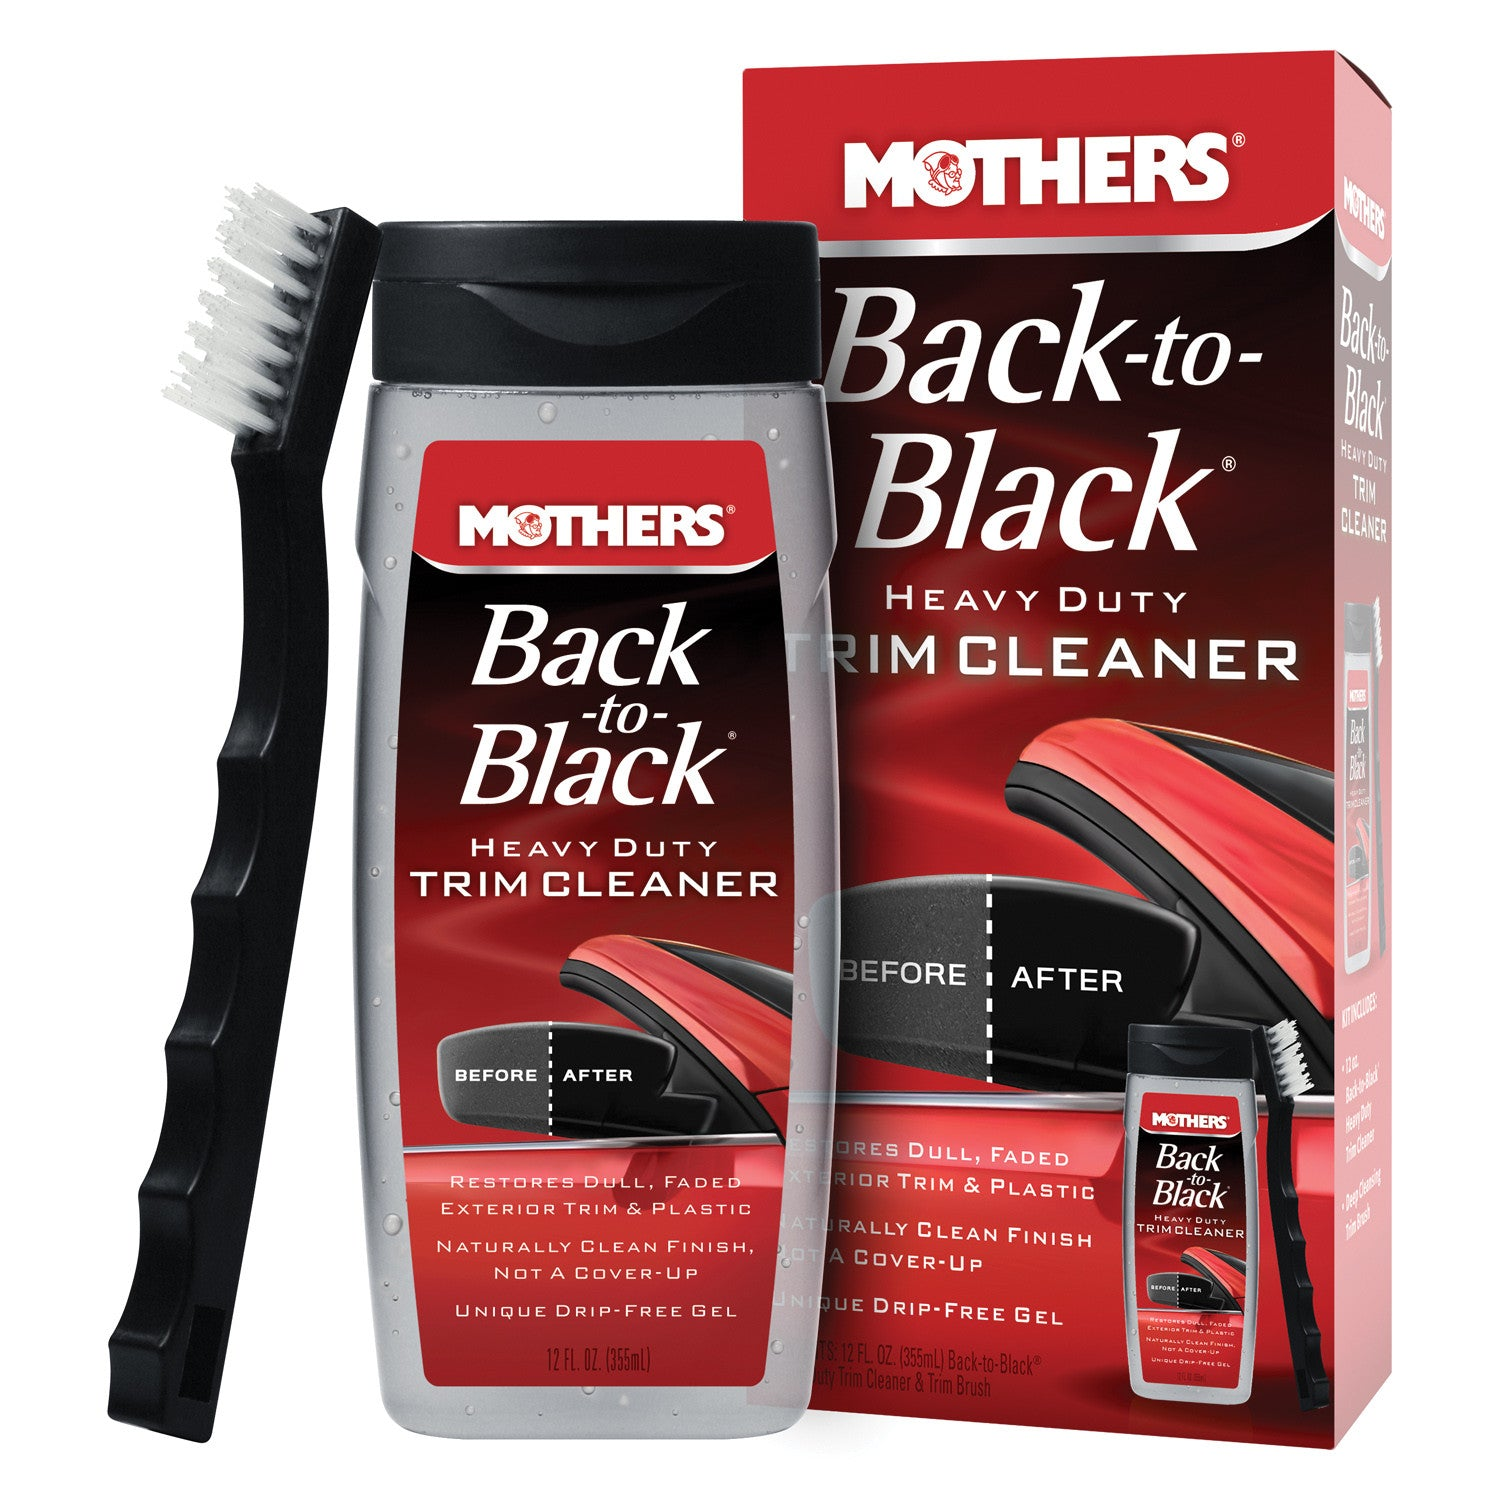 MOTHERS BACK TO BLACK HEAVY DUTY CLEANER KIT 12 OZ